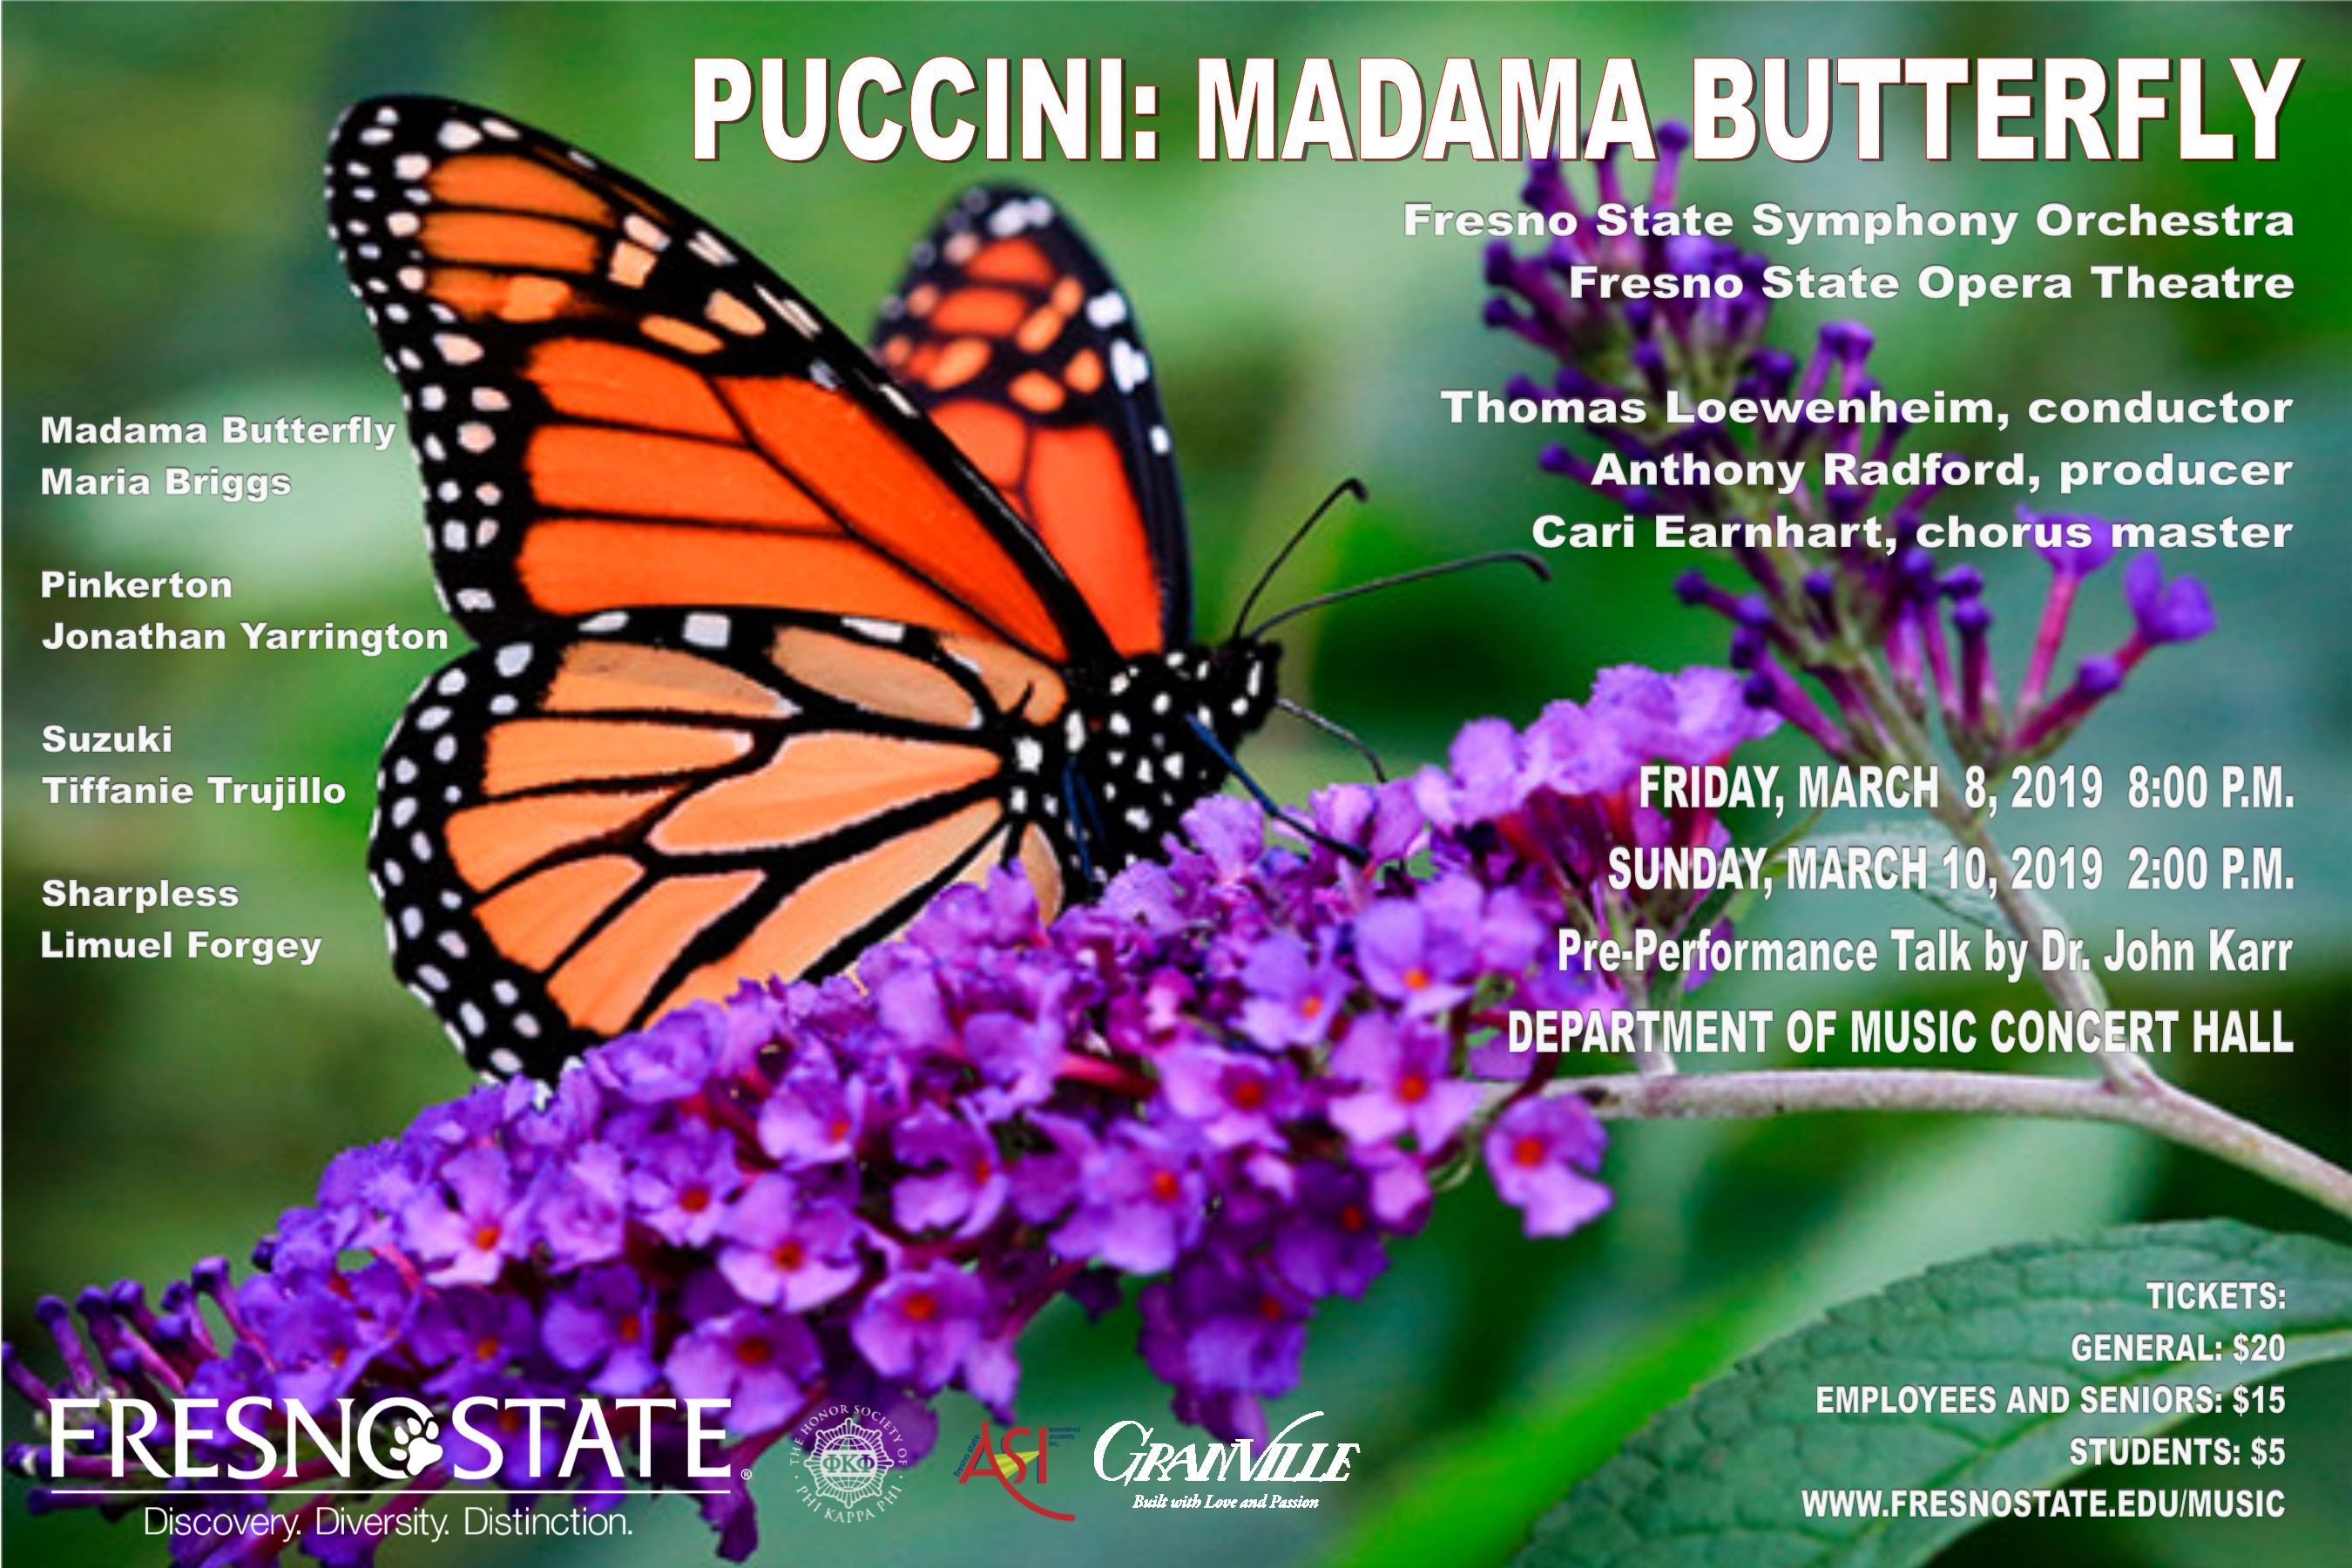 Puccini: Madama Butterfly poster